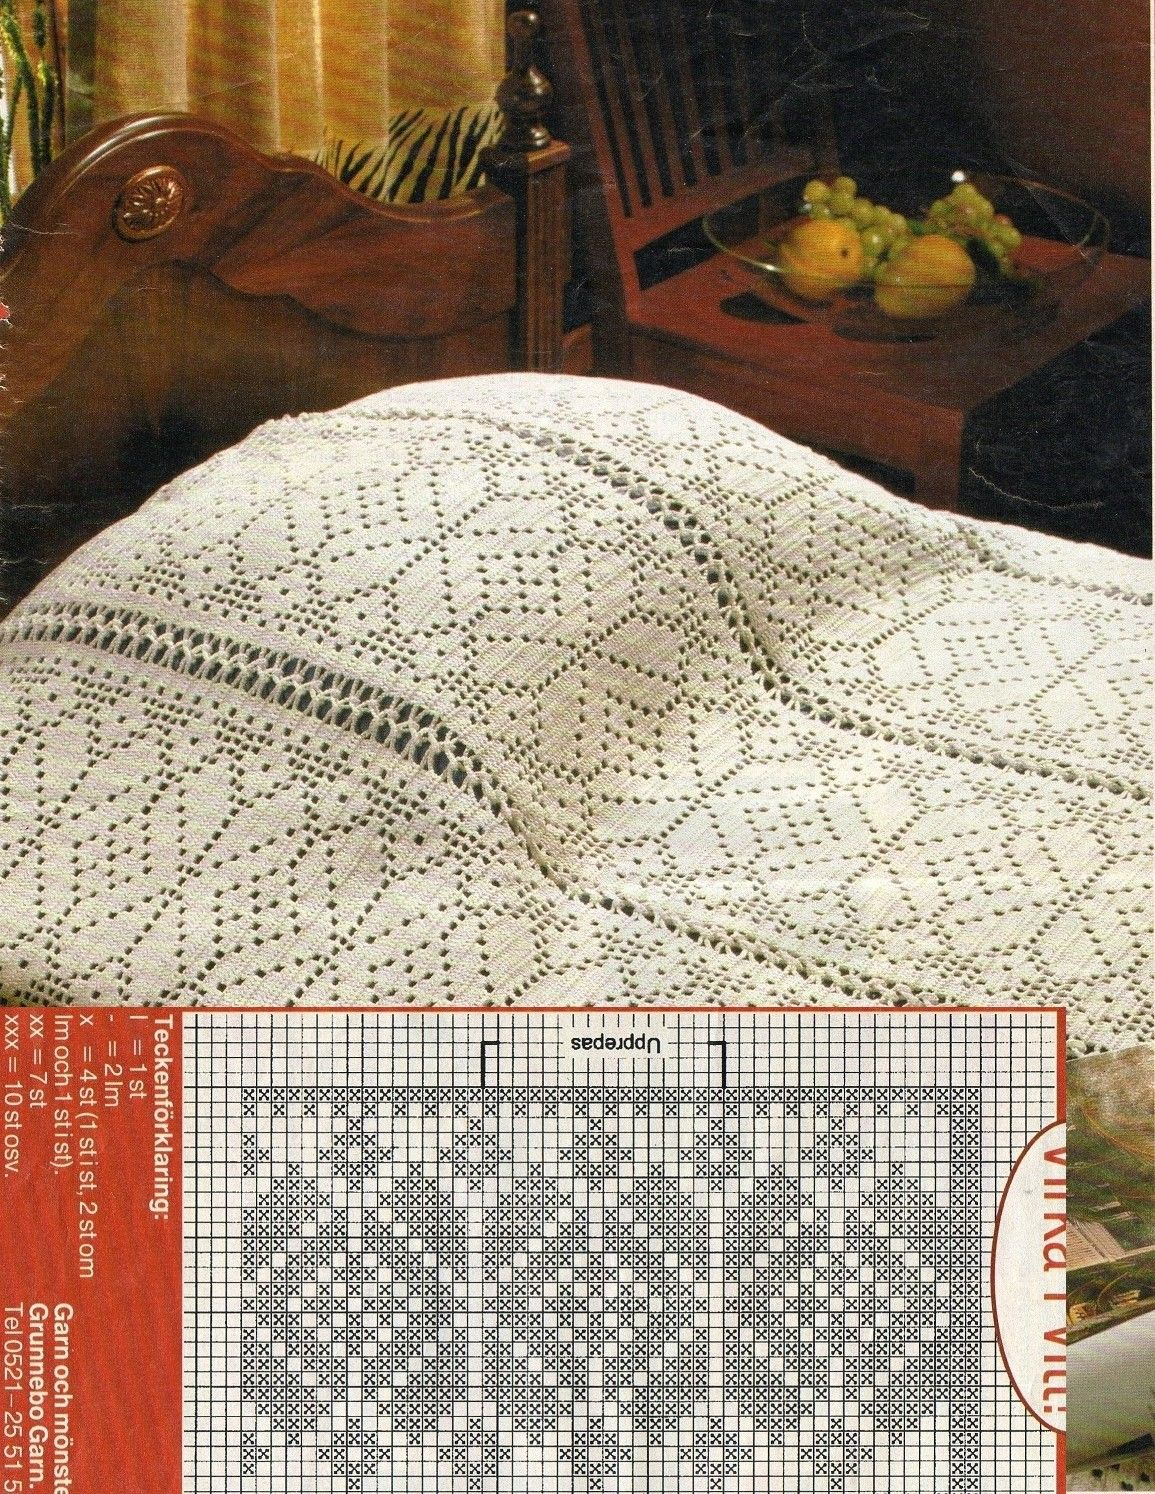 Crochet filet bedspread with diagram crochet filet pinterest crochet filet bedspread with diagram ccuart Images